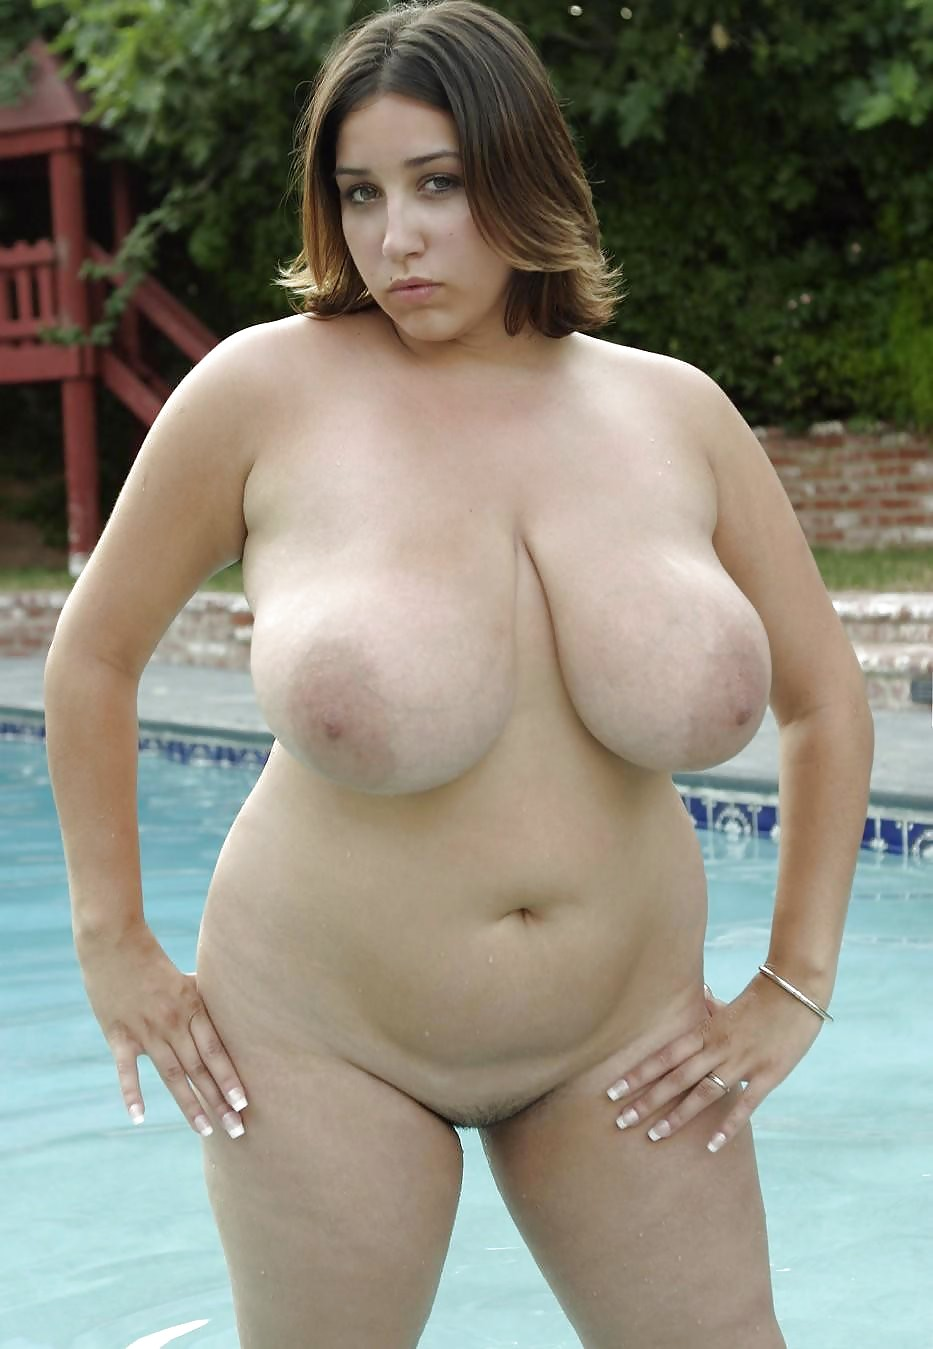 Bbw kiki shows her titties